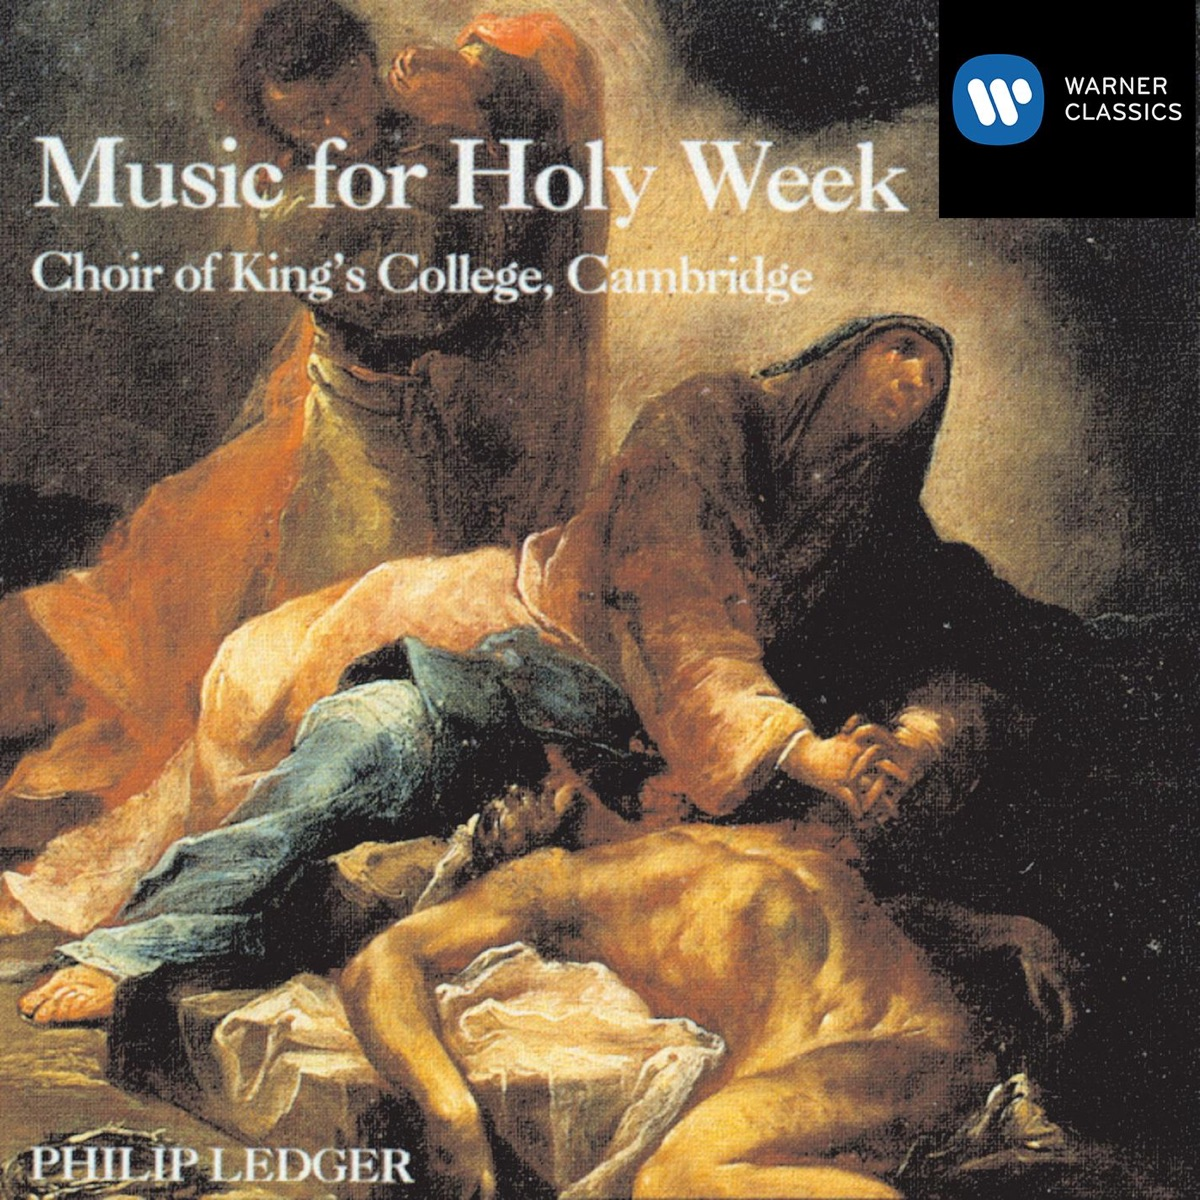 Music for Holy Week Choir of Kings College Cambridge  Sir Philip Ledger CD cover